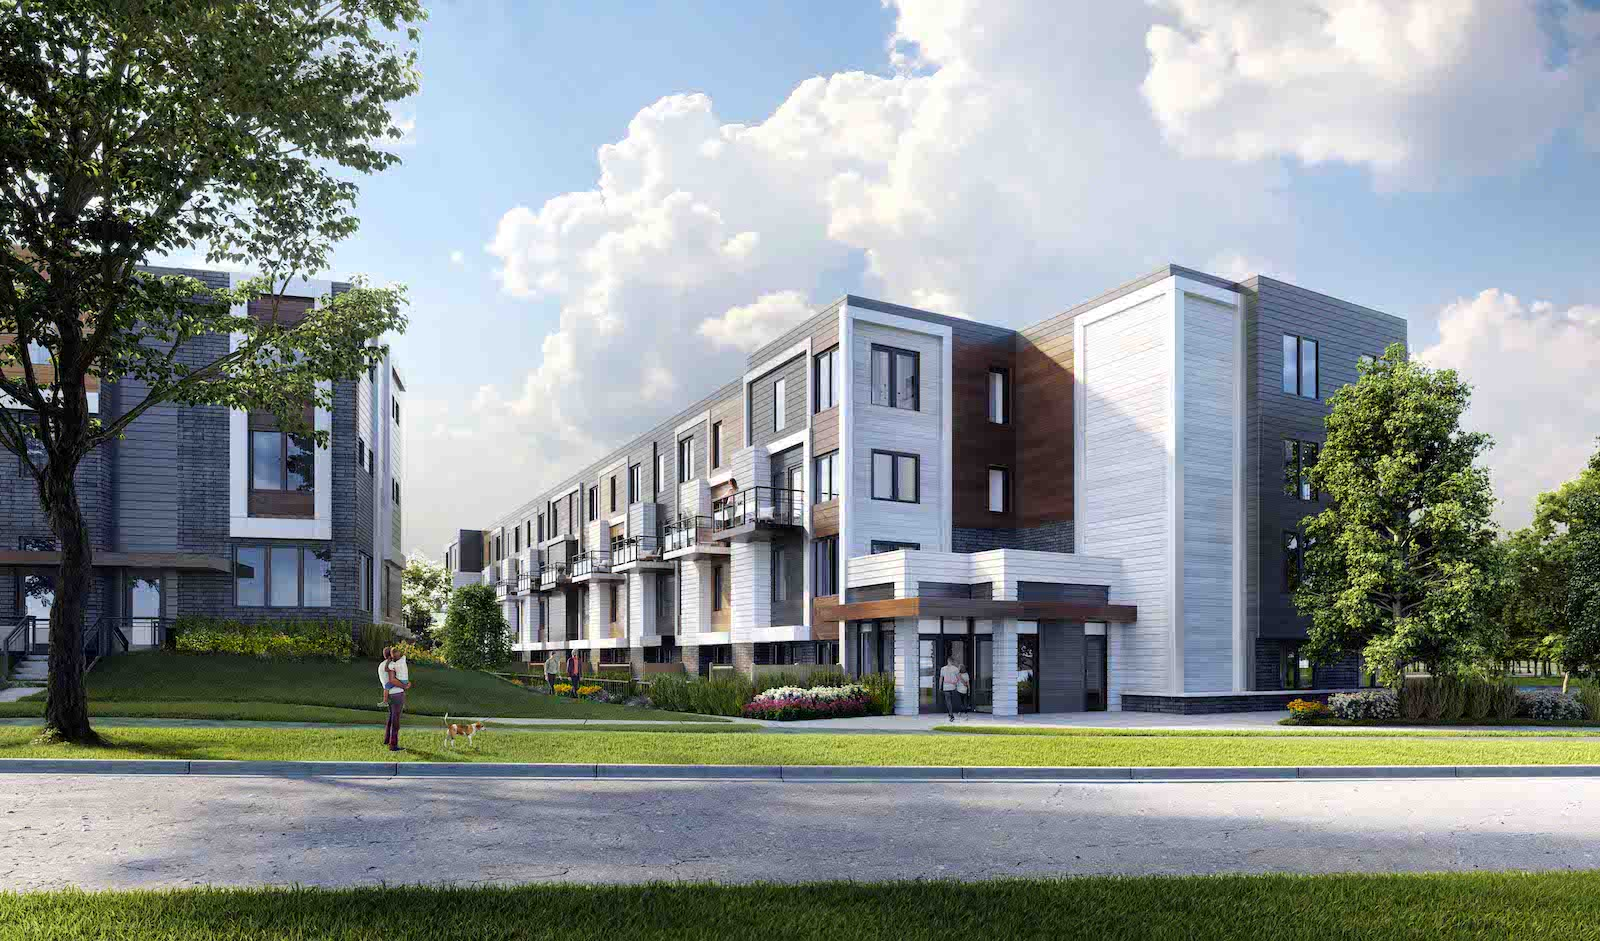 Exterior rendering of Parkside Towns at Saturday with roadside and walkway.